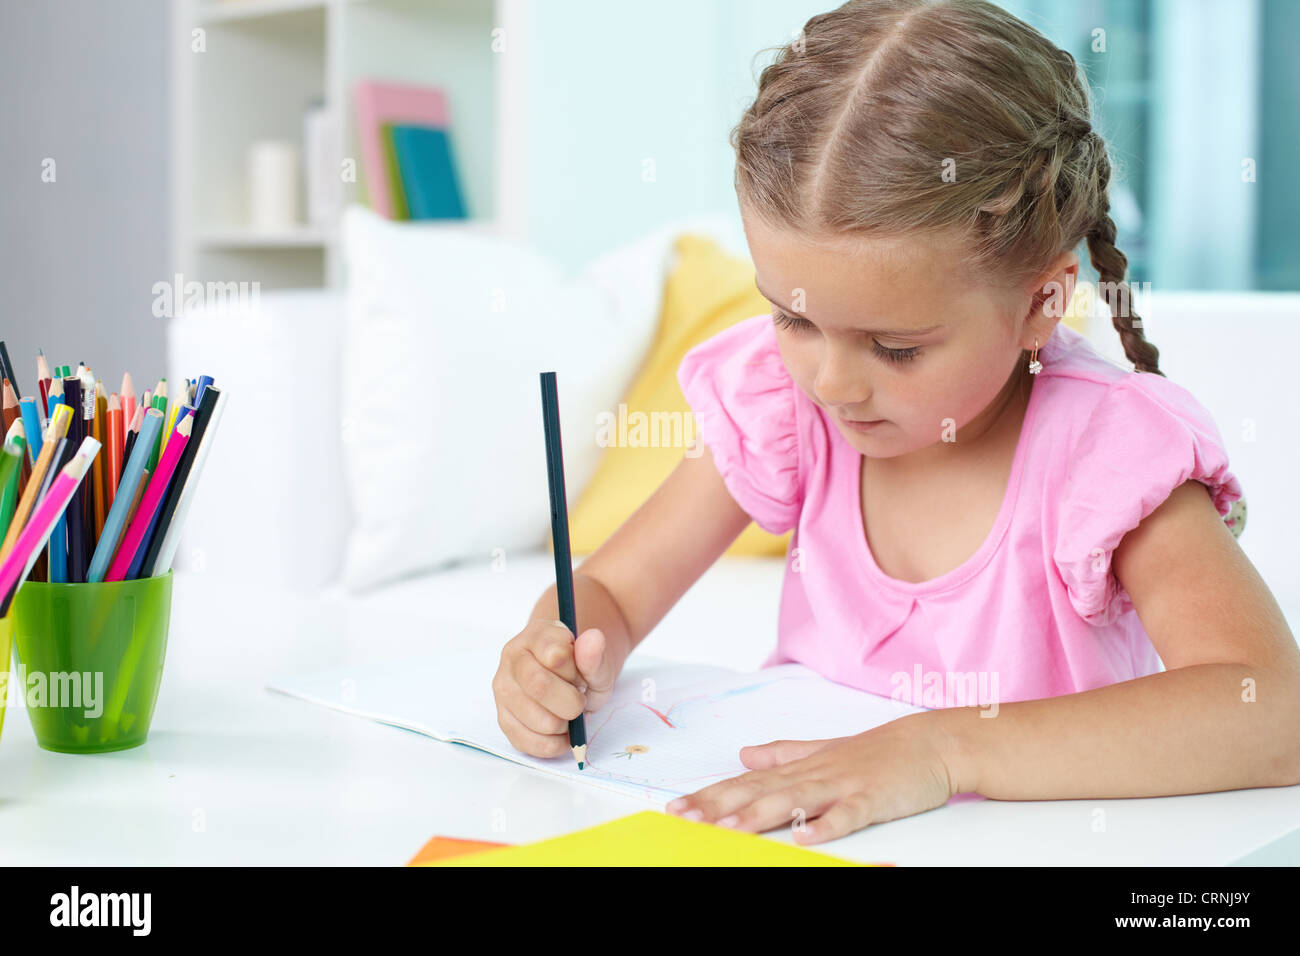 cute little girl drawing with crayons stock photo 49033207 alamy